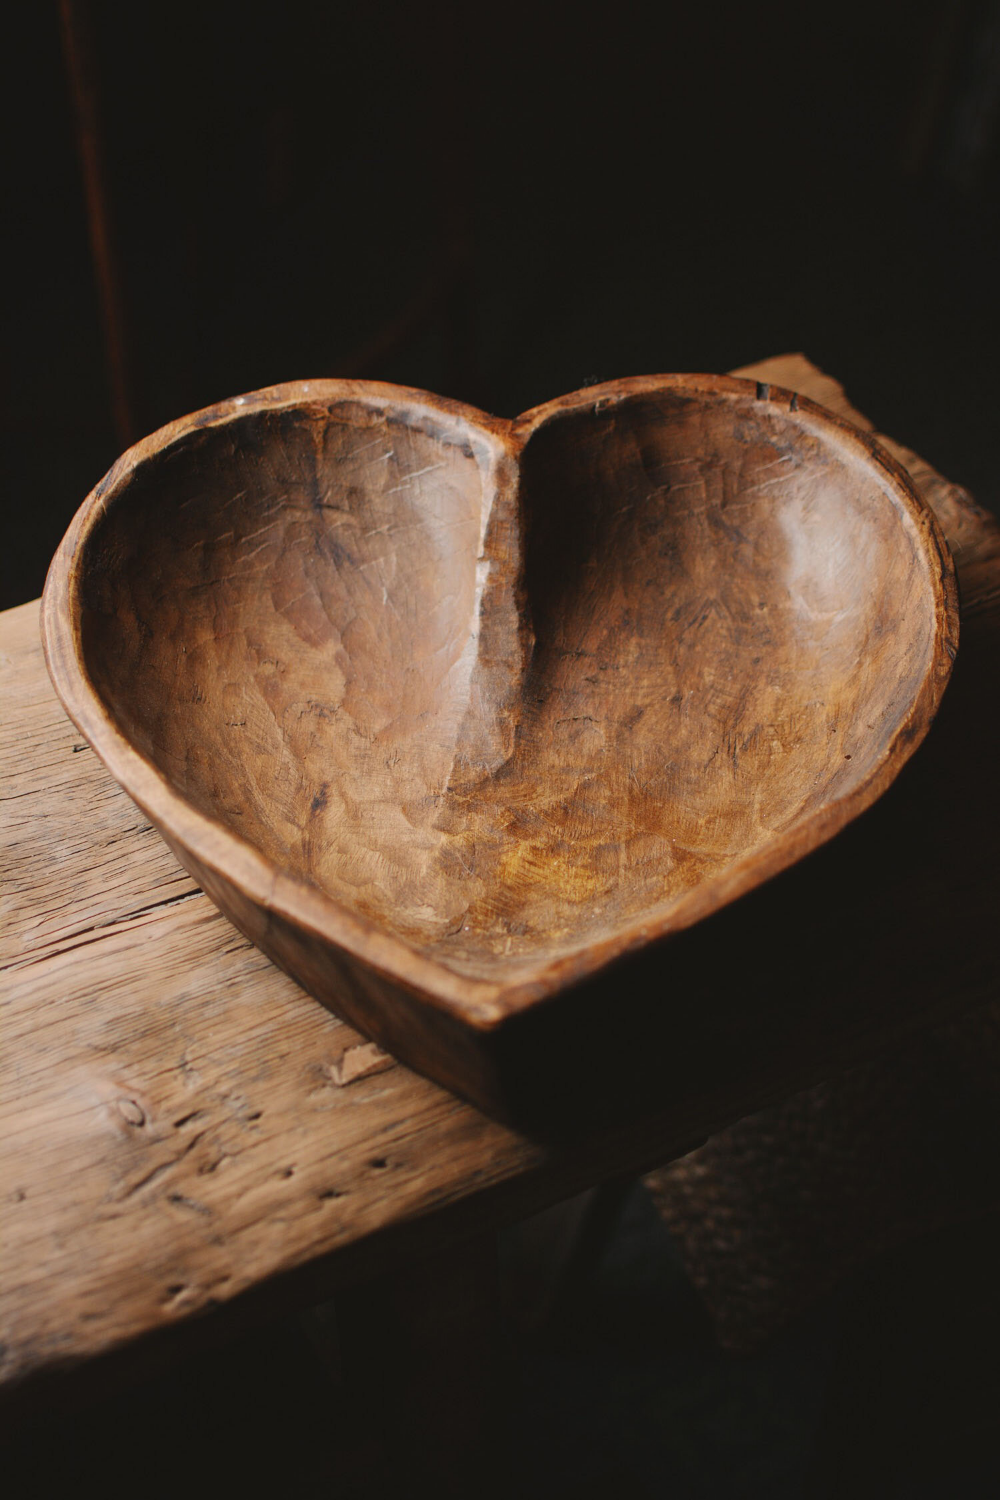 Hand Carved Wooden Heart Bowls The Salvage Co In 2020 Wooden Hearts Hand Carved Wooden Bowls Hand Carved